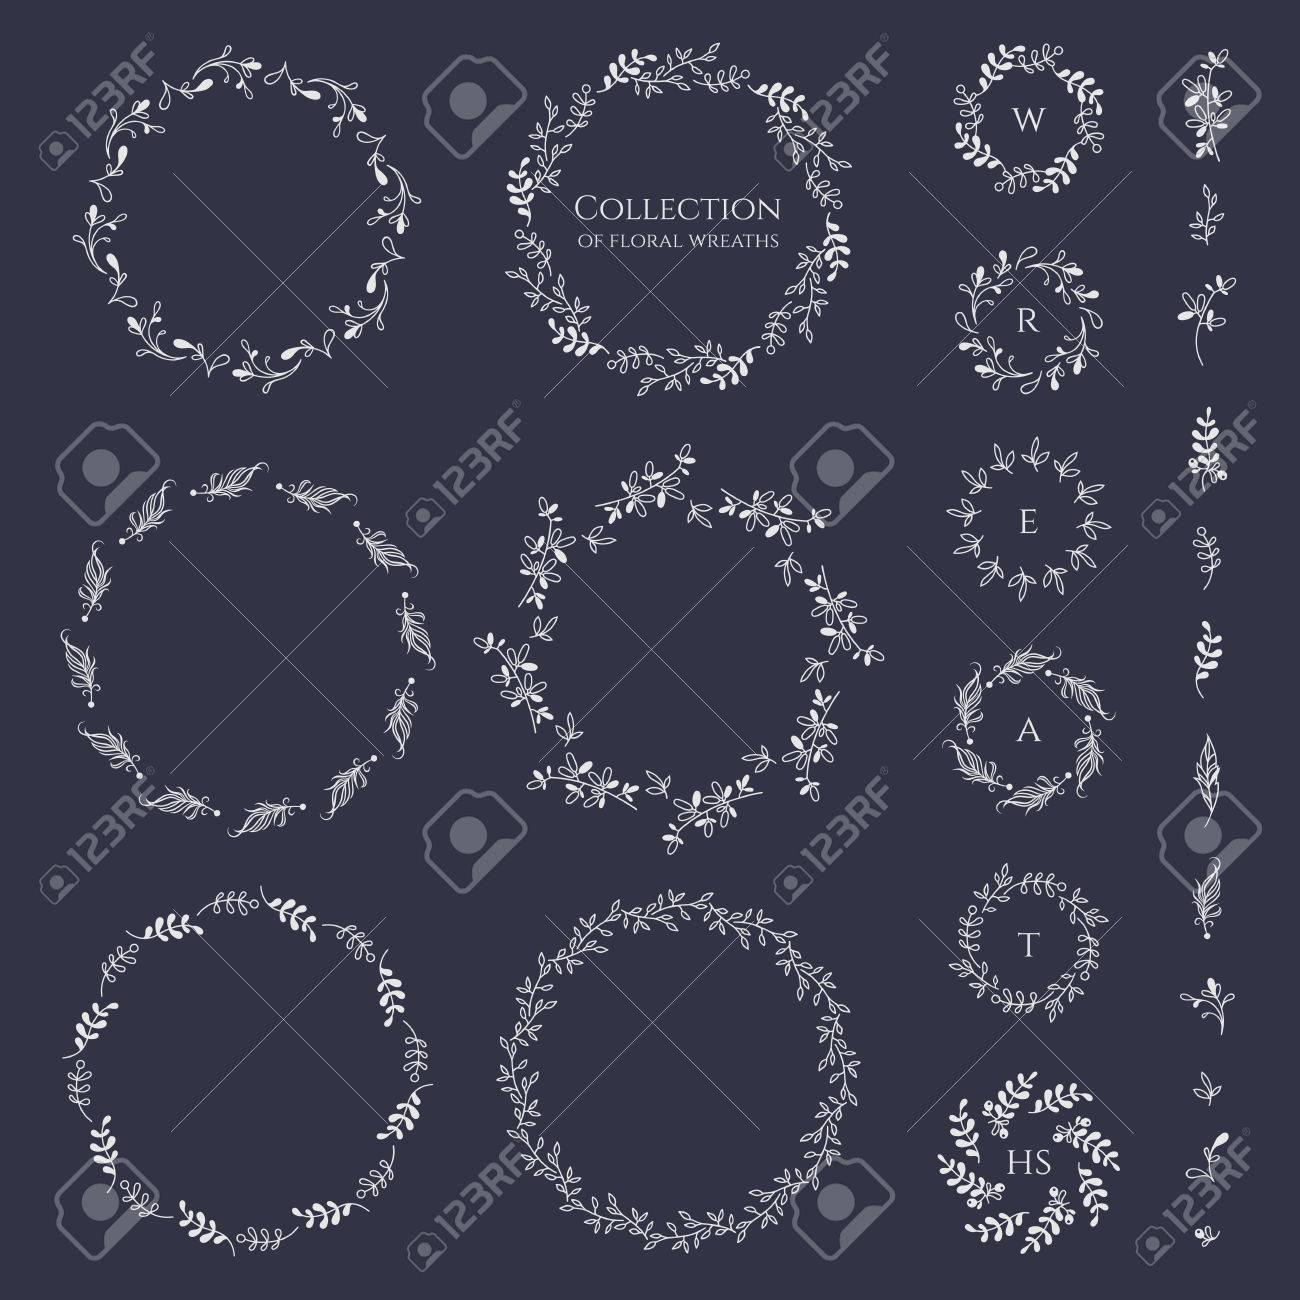 Collection of floral wreaths frames and monograms. Decorative elements for design invitation, cards, labels. Stylized twigs, feathers. - 50022227